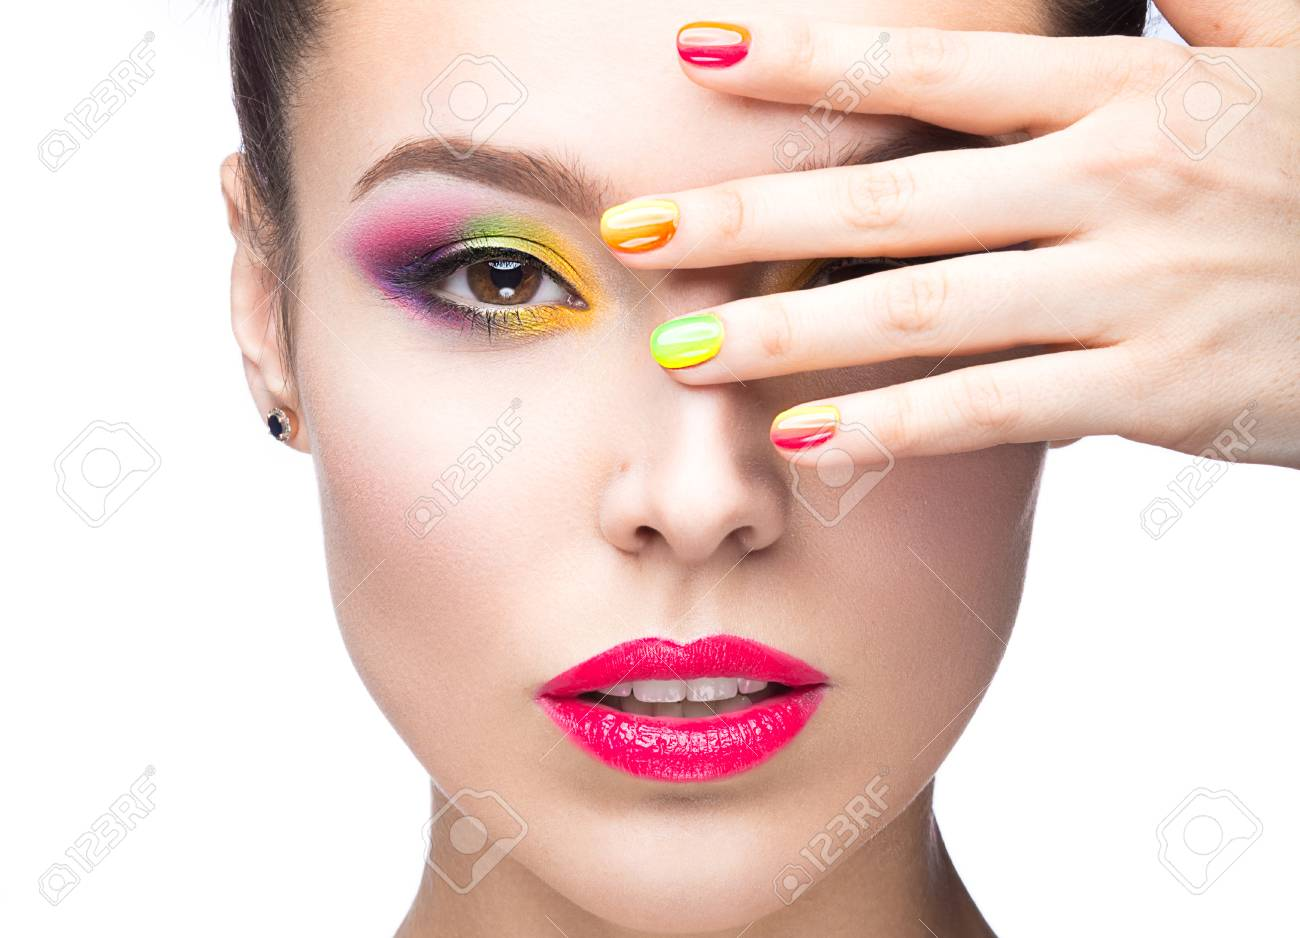 Beautiful Model Girl With Bright Colored Makeup And Nail Polish ...